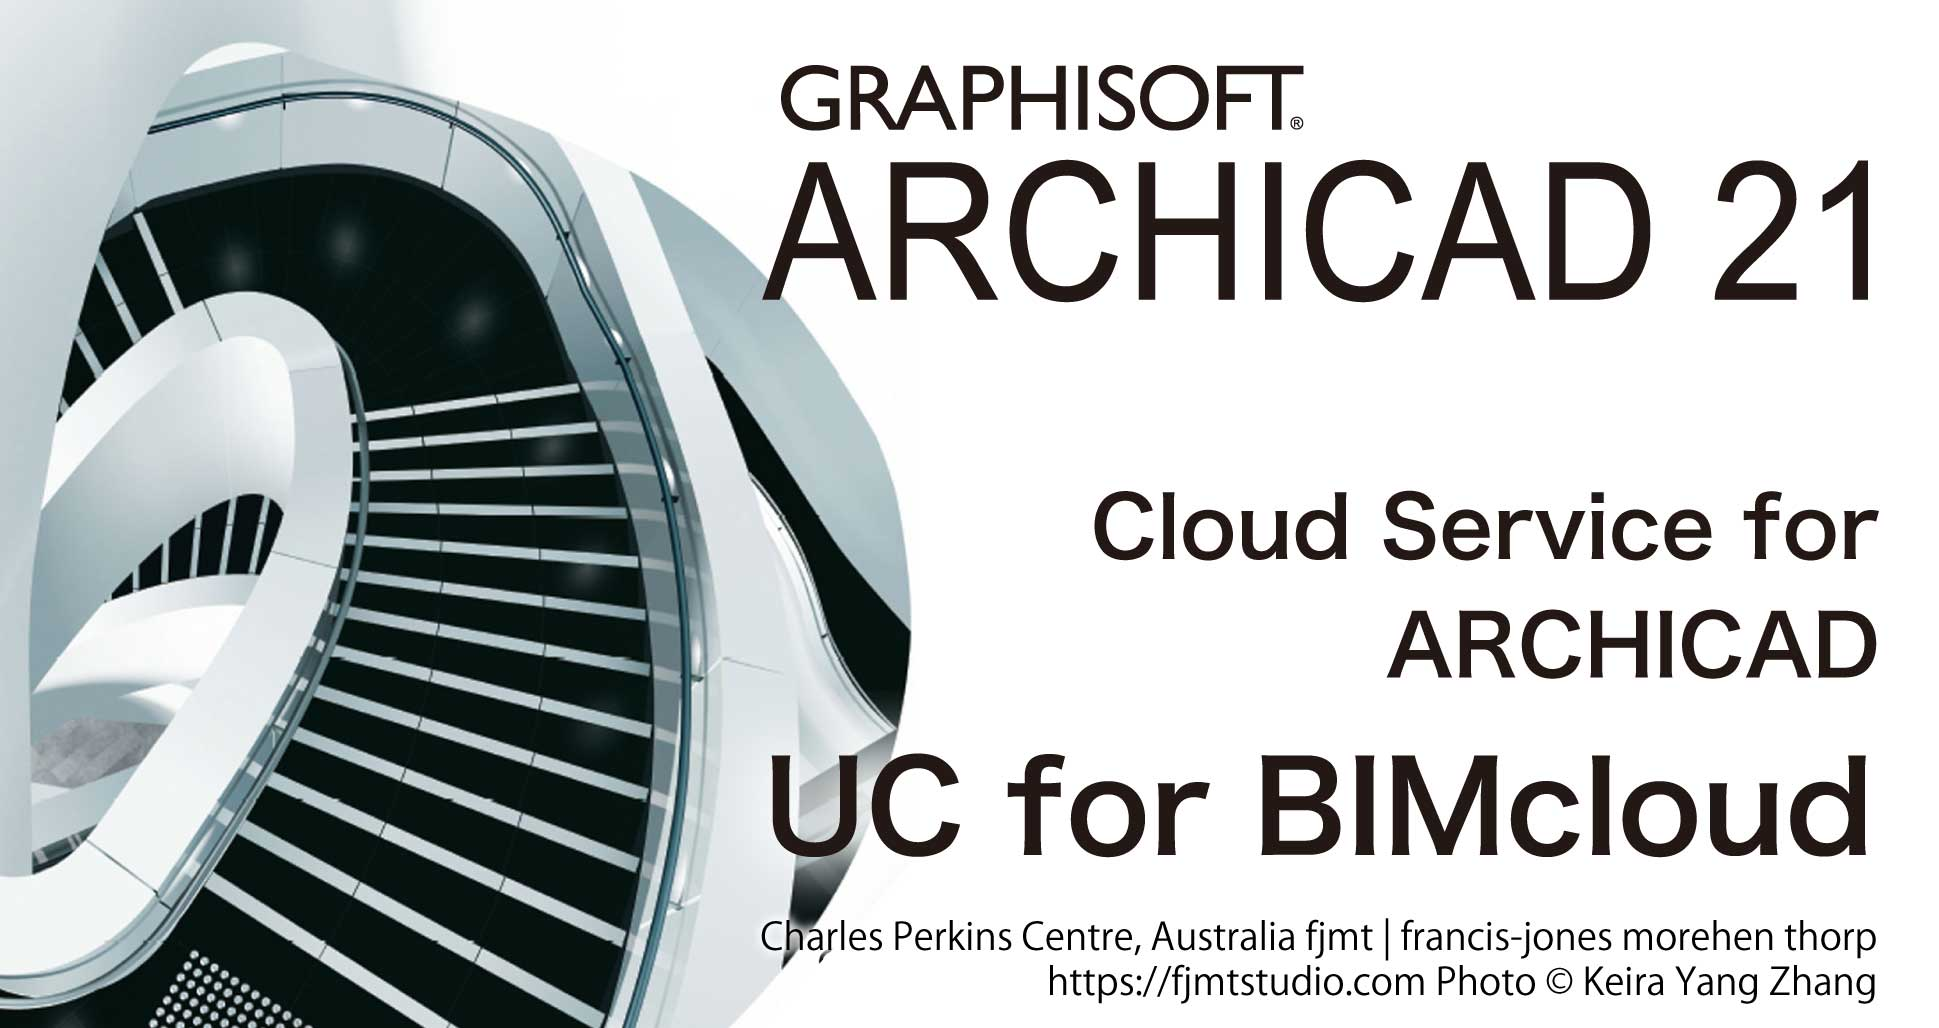 Cloud service for ARCHICAD, UC for BIMcloud